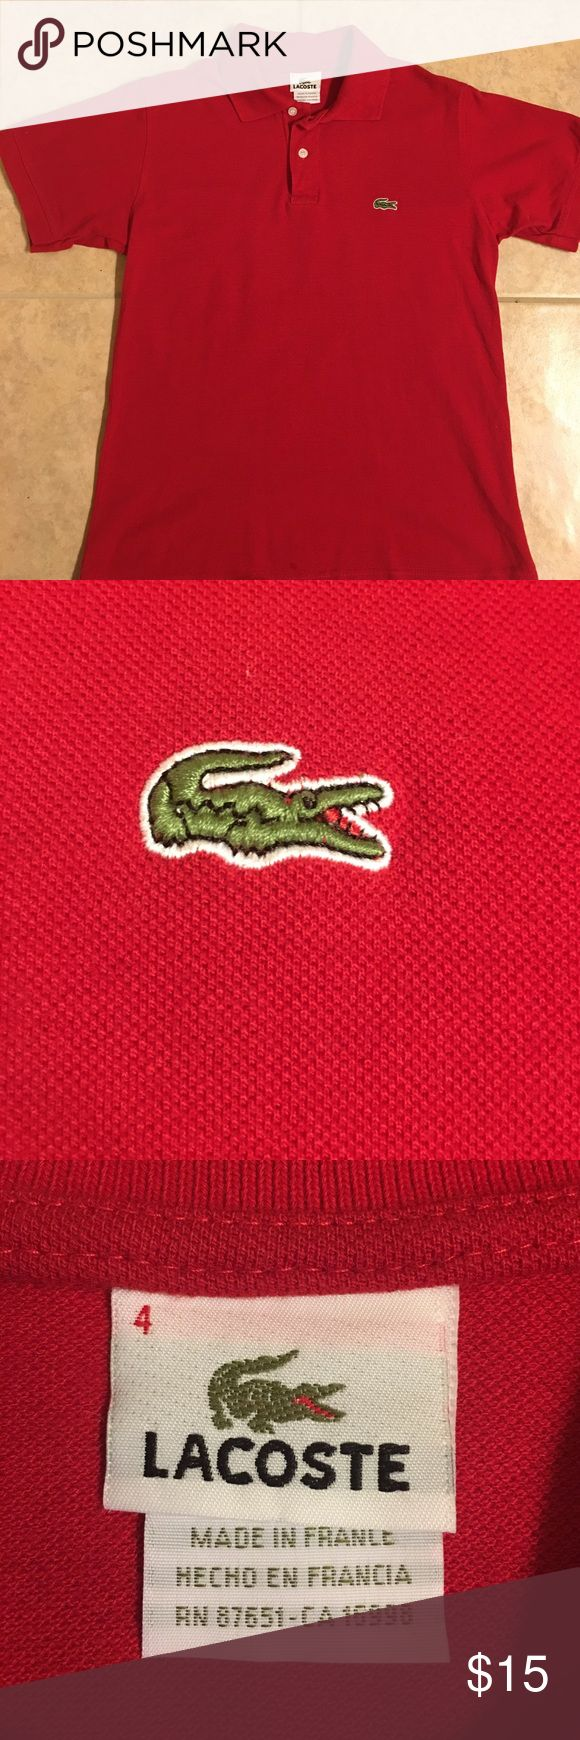 Men's Lacoste Polo Shirt Red Size 4 Small Men's Lacoste Polo Shirt.  Small- size 4.  Red. Like new condition! Great shirt for summer!! Smoke-free home.  Bundle and save! Lacoste Shirts Polos